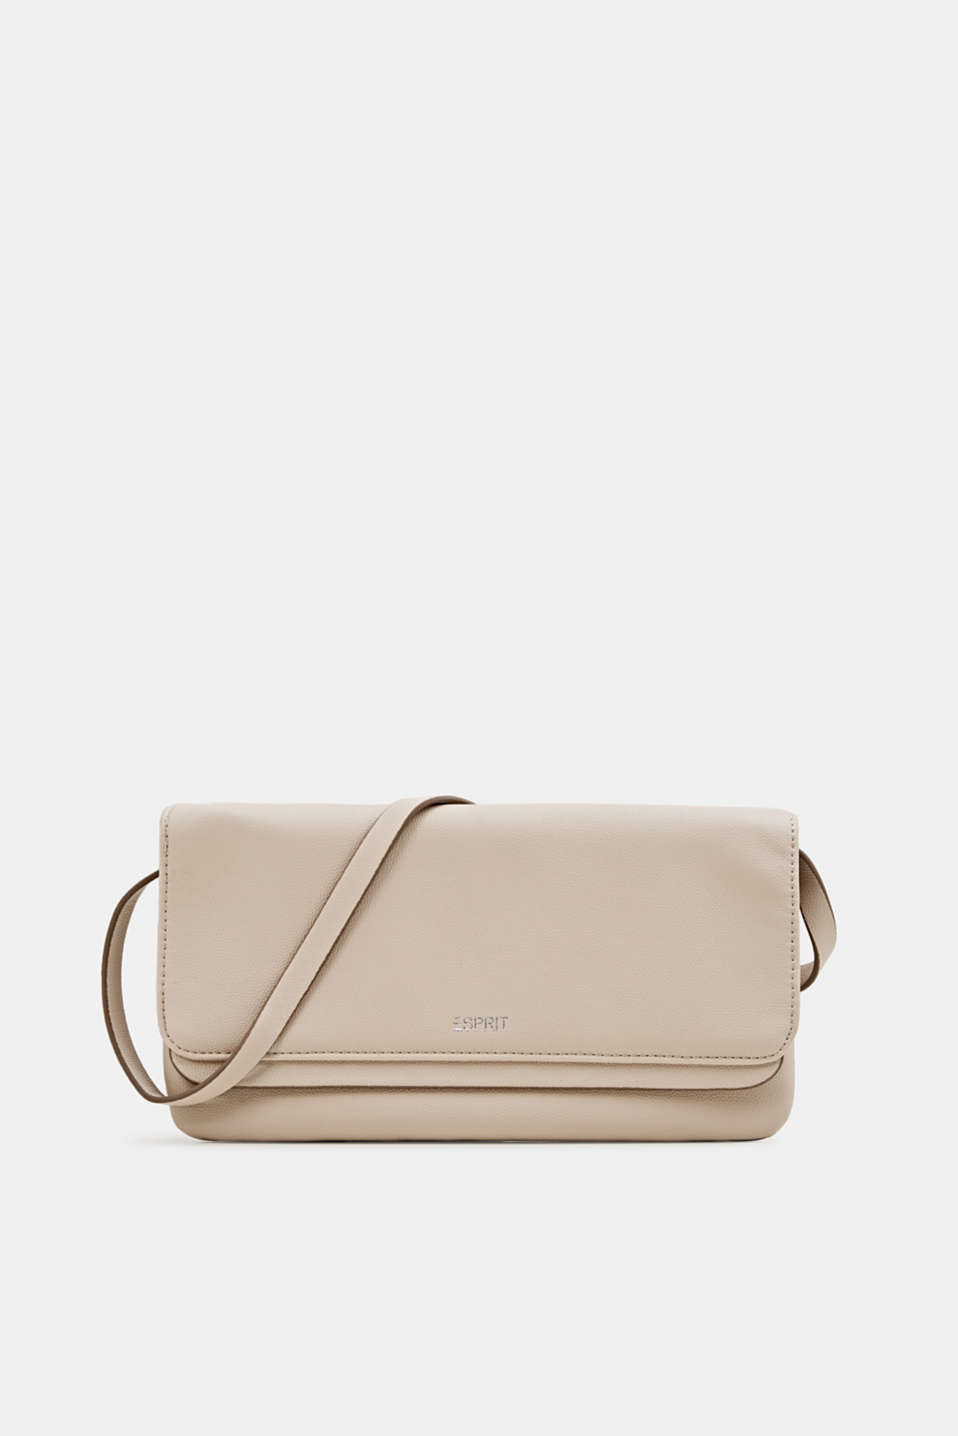 Esprit - Clutch with detachable strap